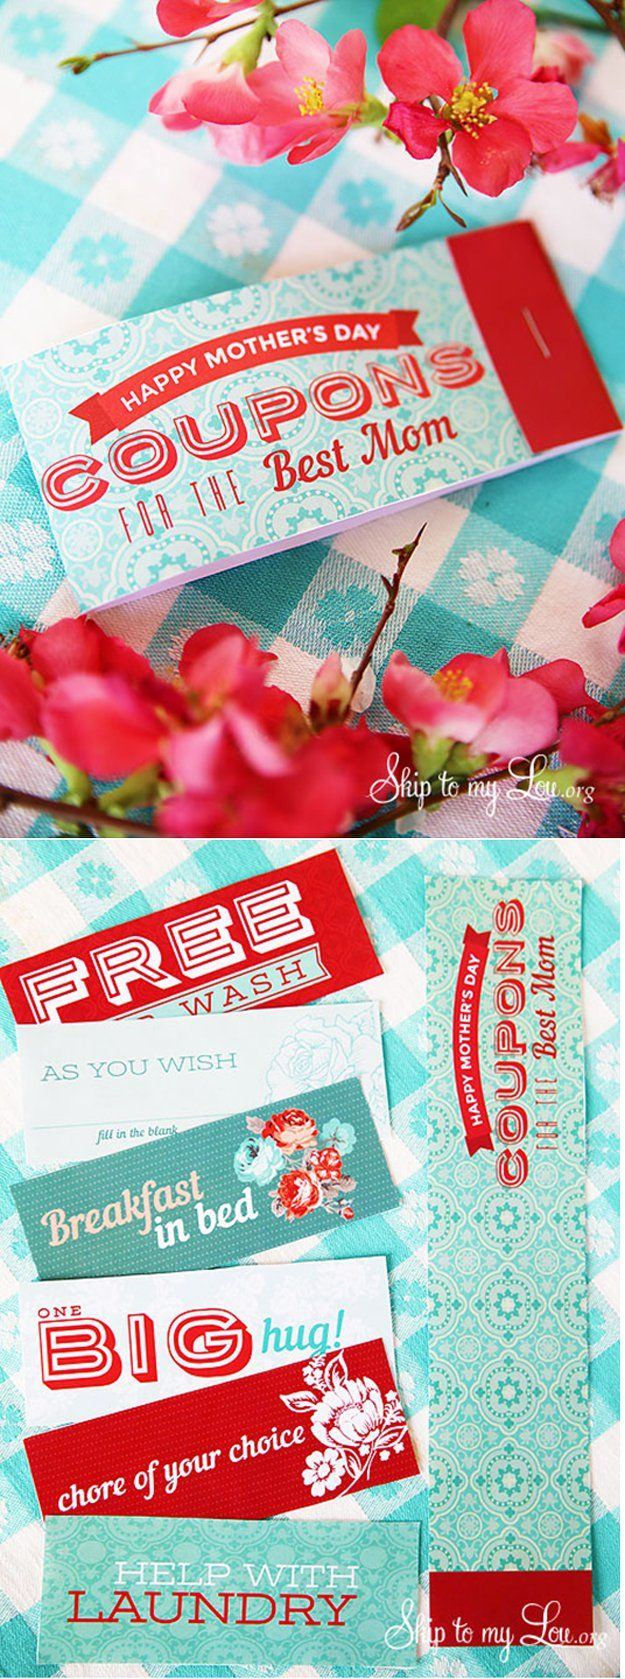 Best Mothers Day Ideas - Printable Mother's Day Coupons - Easy and Cute DIY Projects to Make for Mom - Cool Gifts and Homemade Cards, Gift in A Jar Ideas - Cheap Things You Can Make for Your Mother http://diyjoy.com/diy-mothers-day-ideas